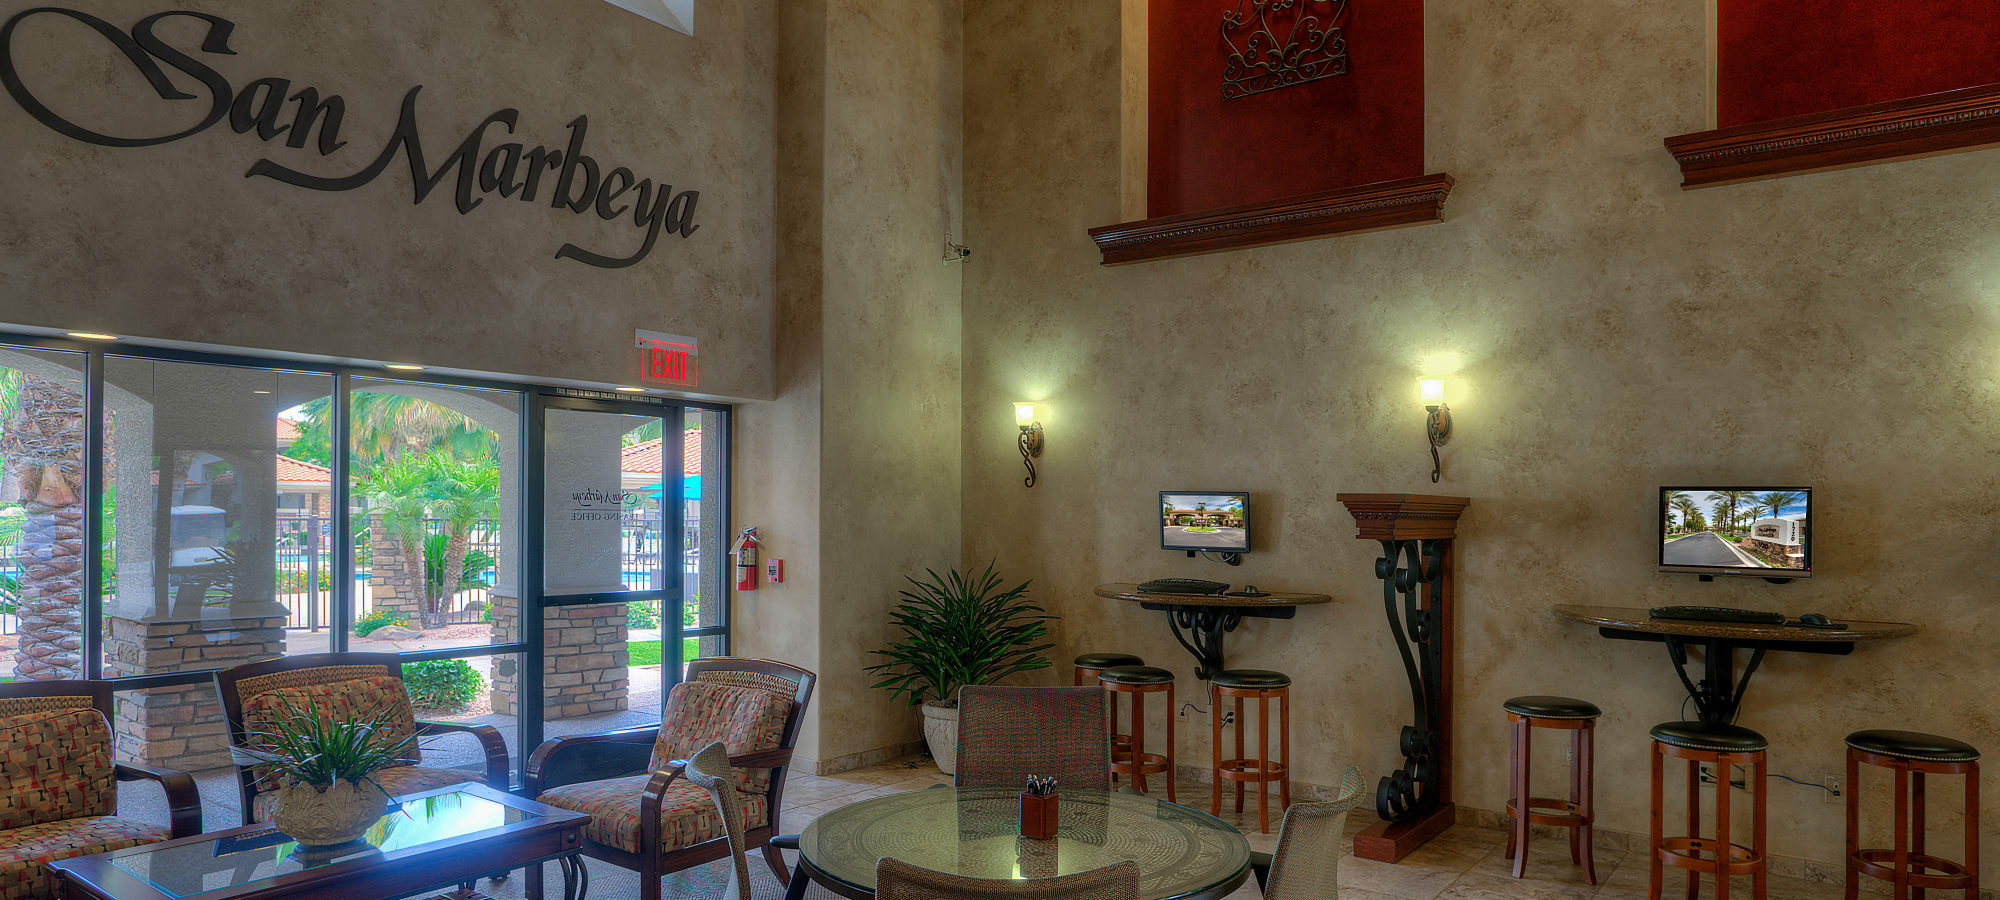 Lobby interior at San Marbeya in Tempe, Arizona